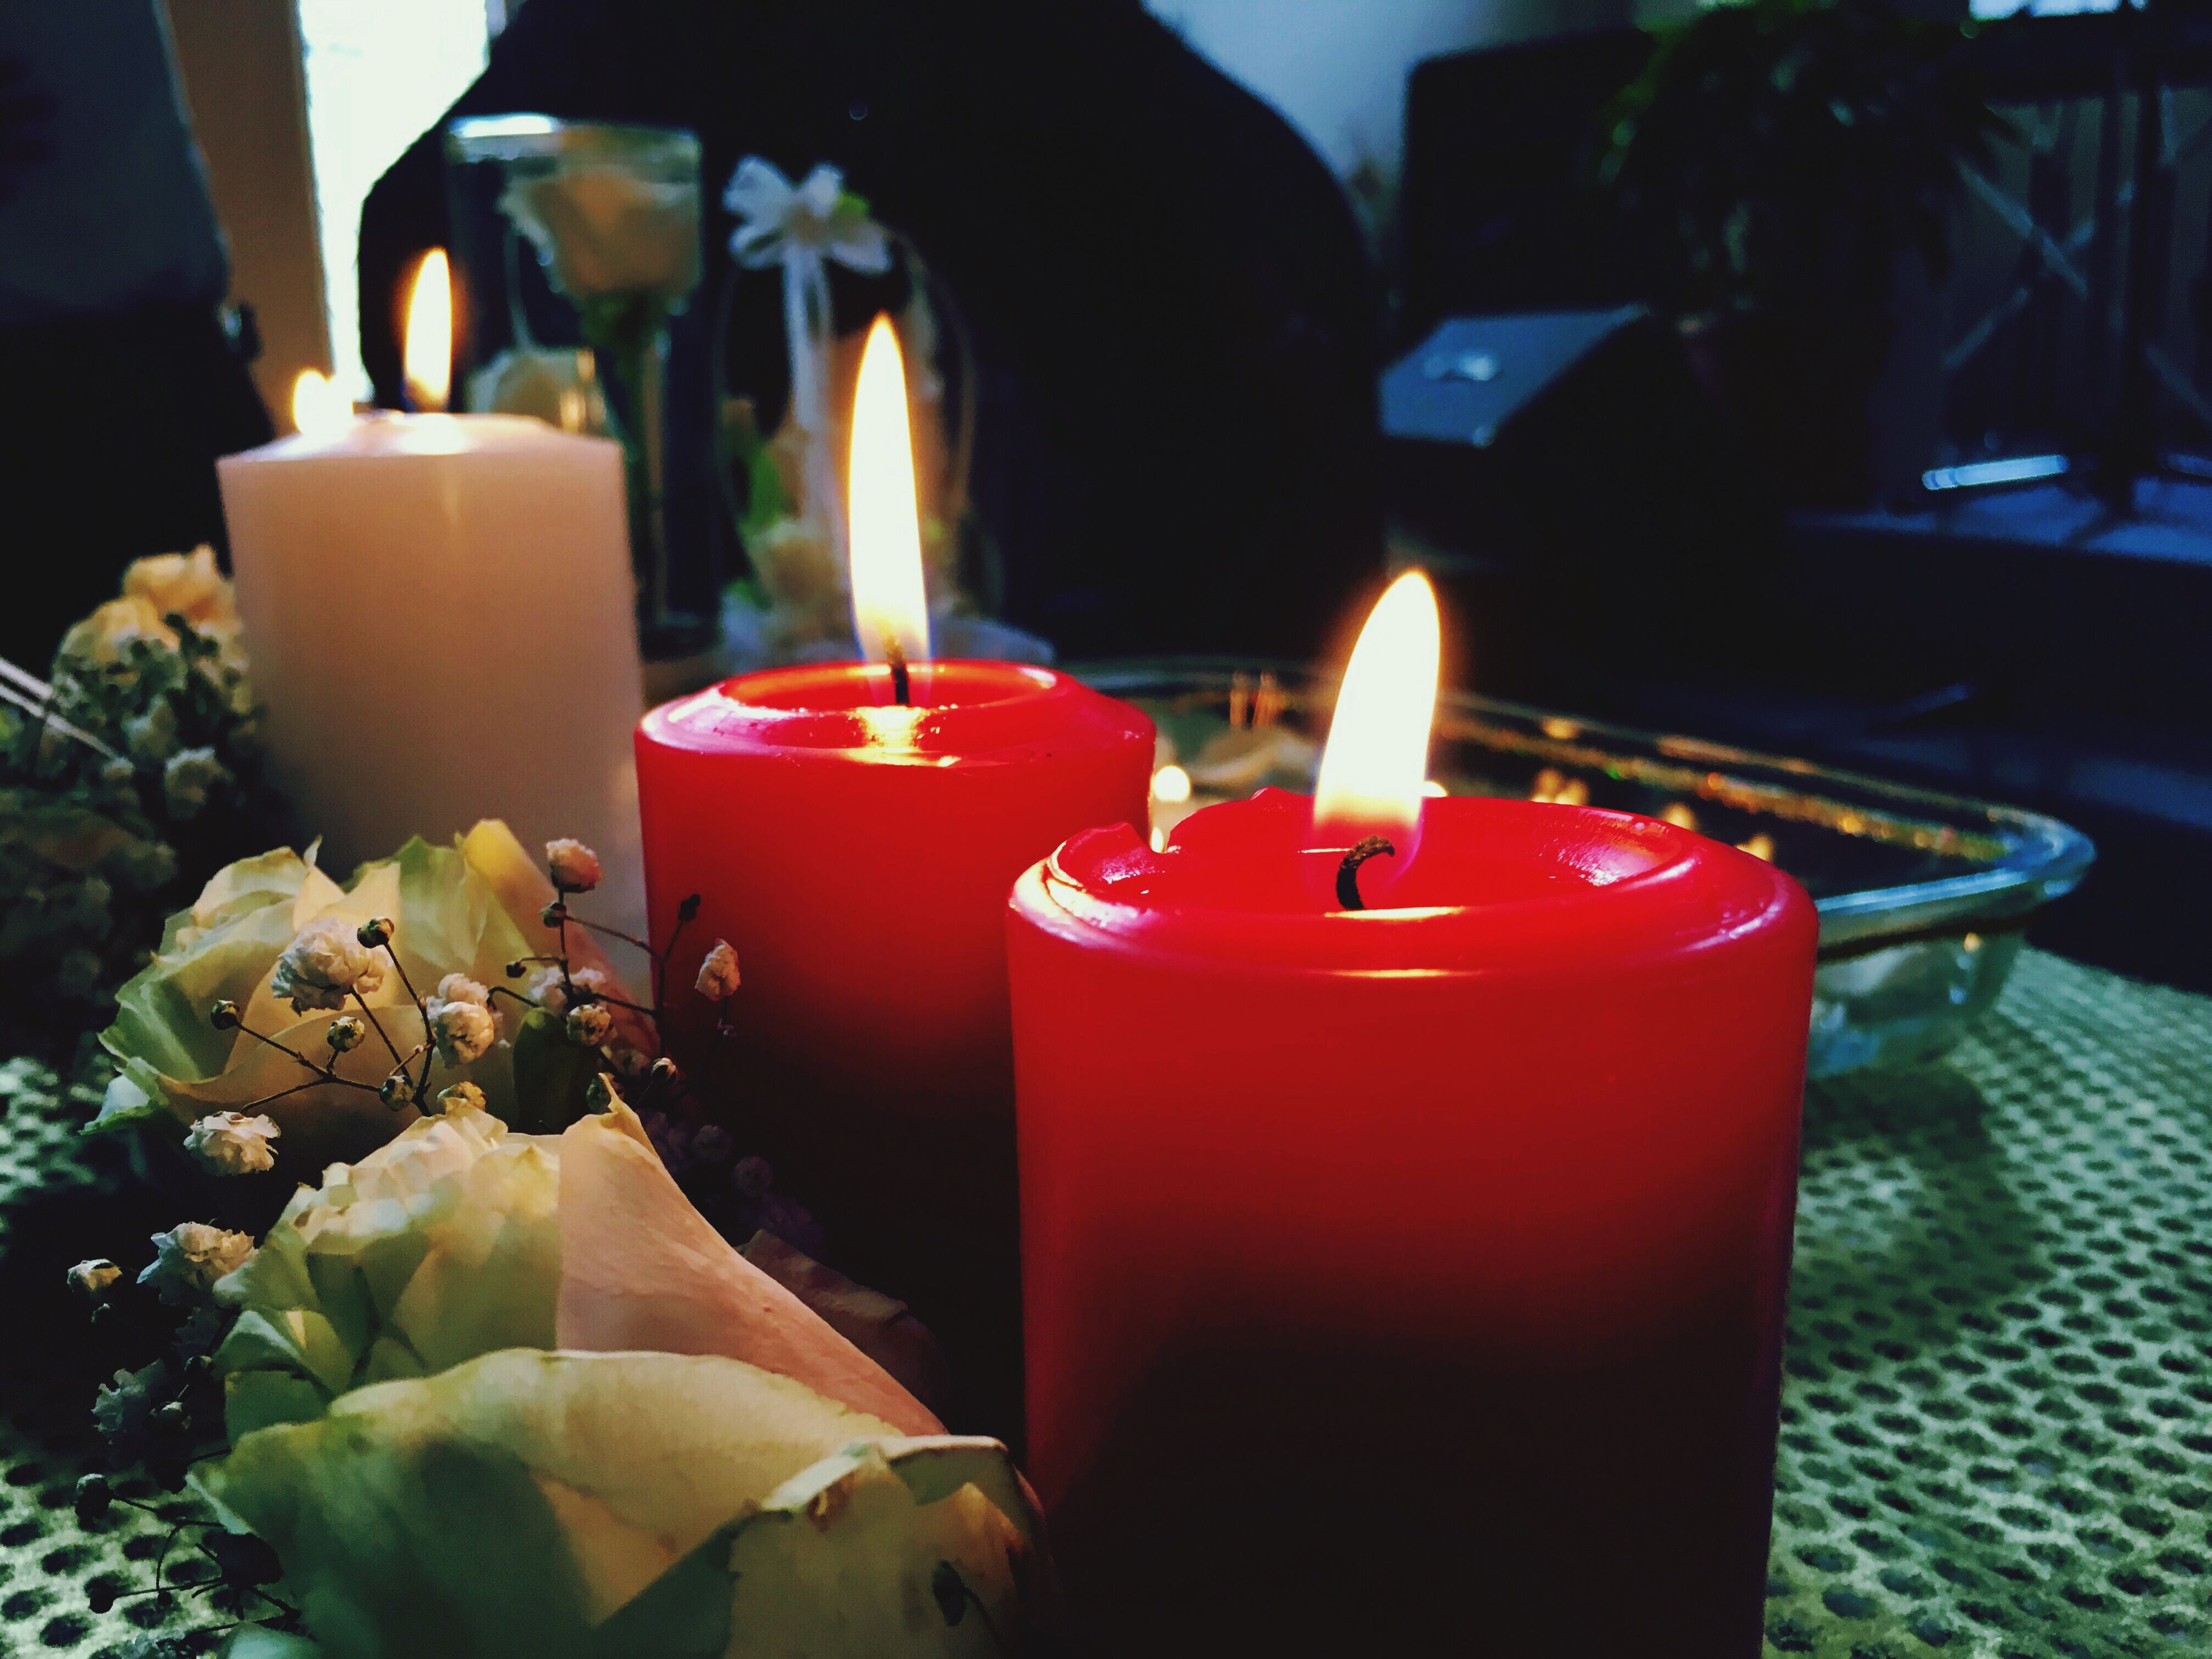 candle, flame, burning, red, glowing, close-up, no people, wax, indoors, celebration, luminosity, tea light, day